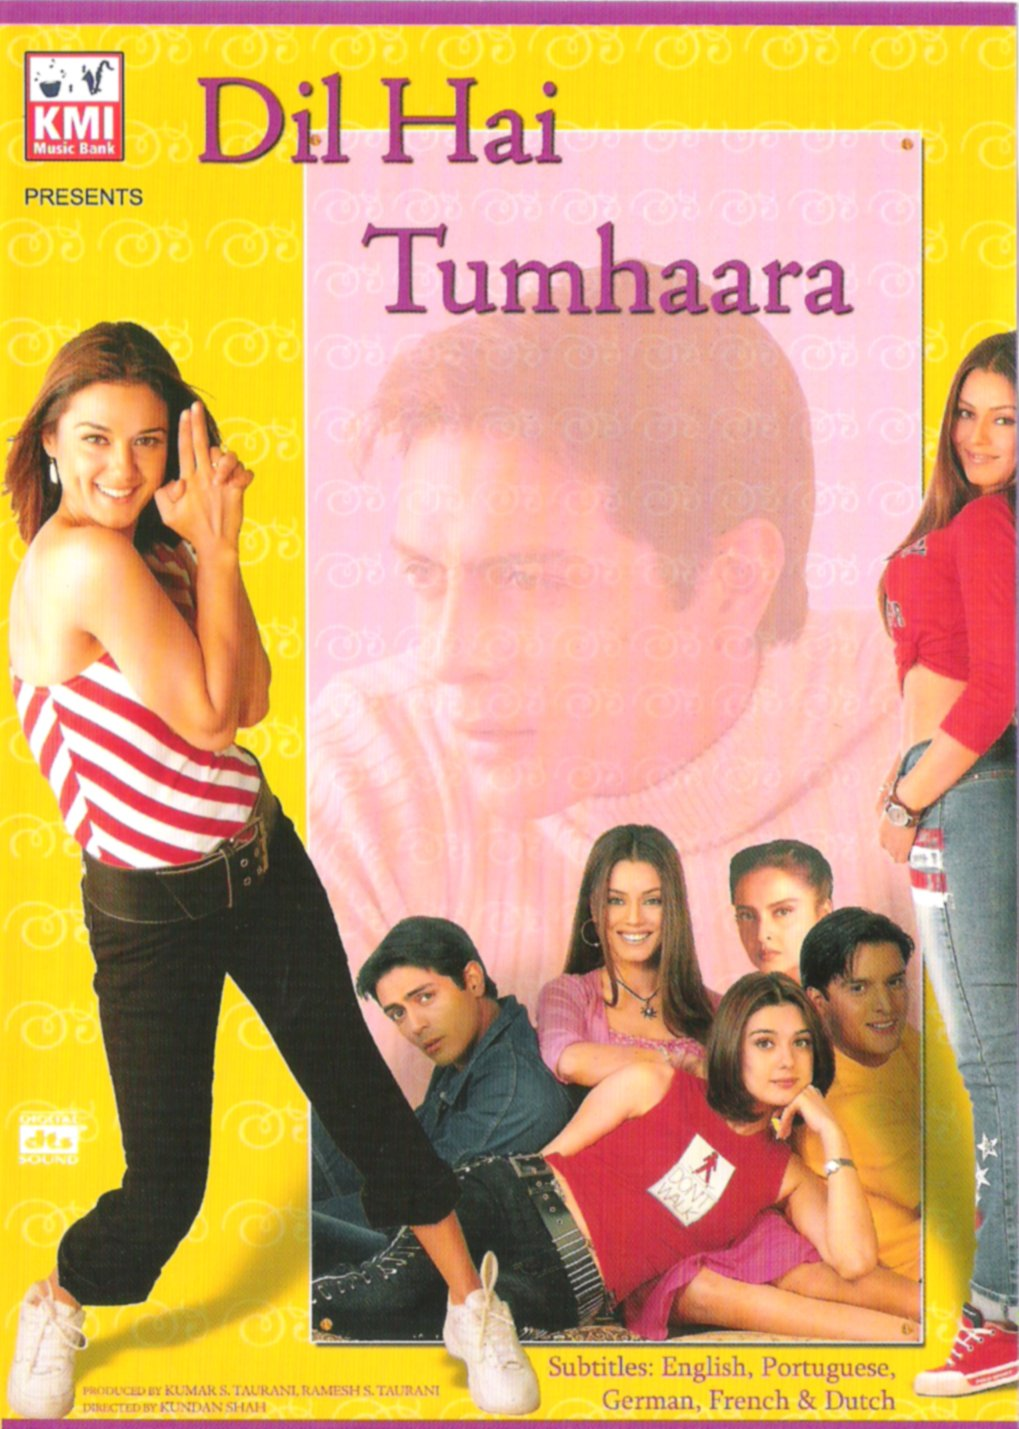 Dil Hai Tumhaara Hd Movie Songs Download - wapmight.net